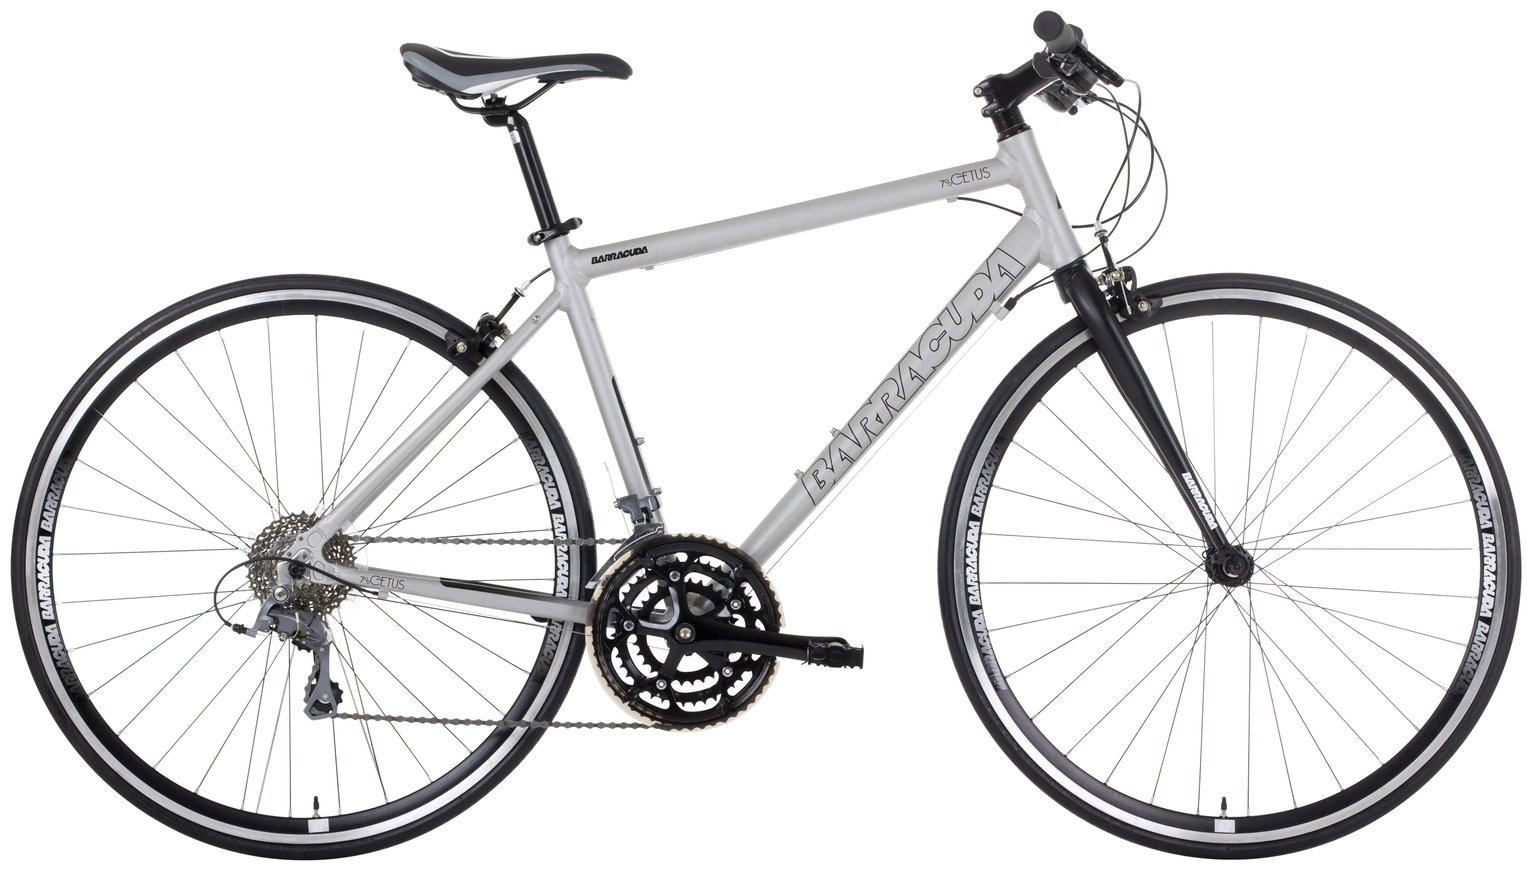 Image of Barracuda Cetus 700C 22 Inch Hybrid Commuter Bike - Mens